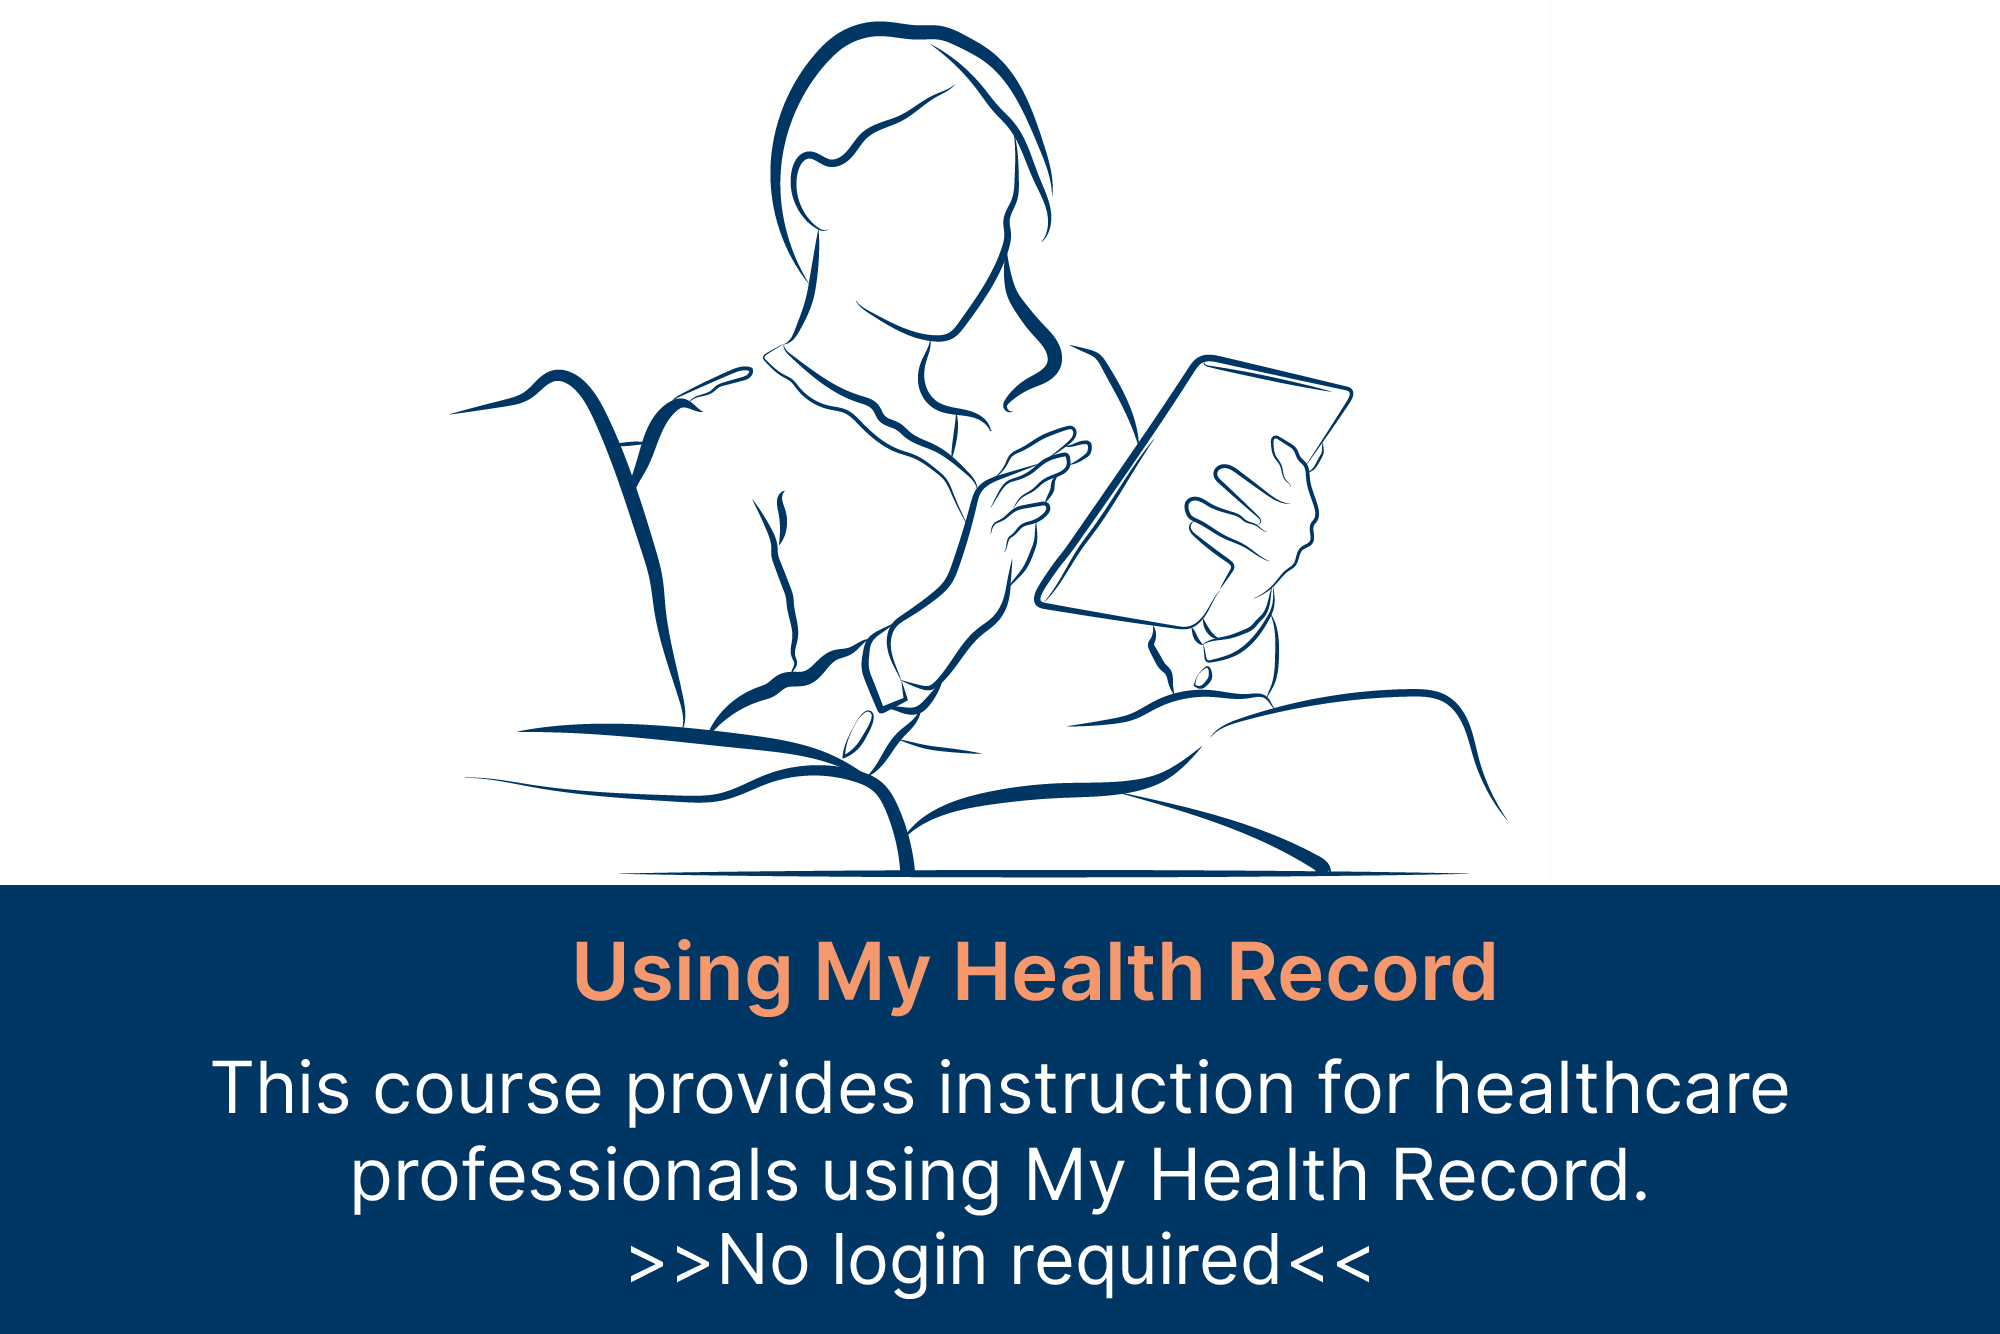 using my health record